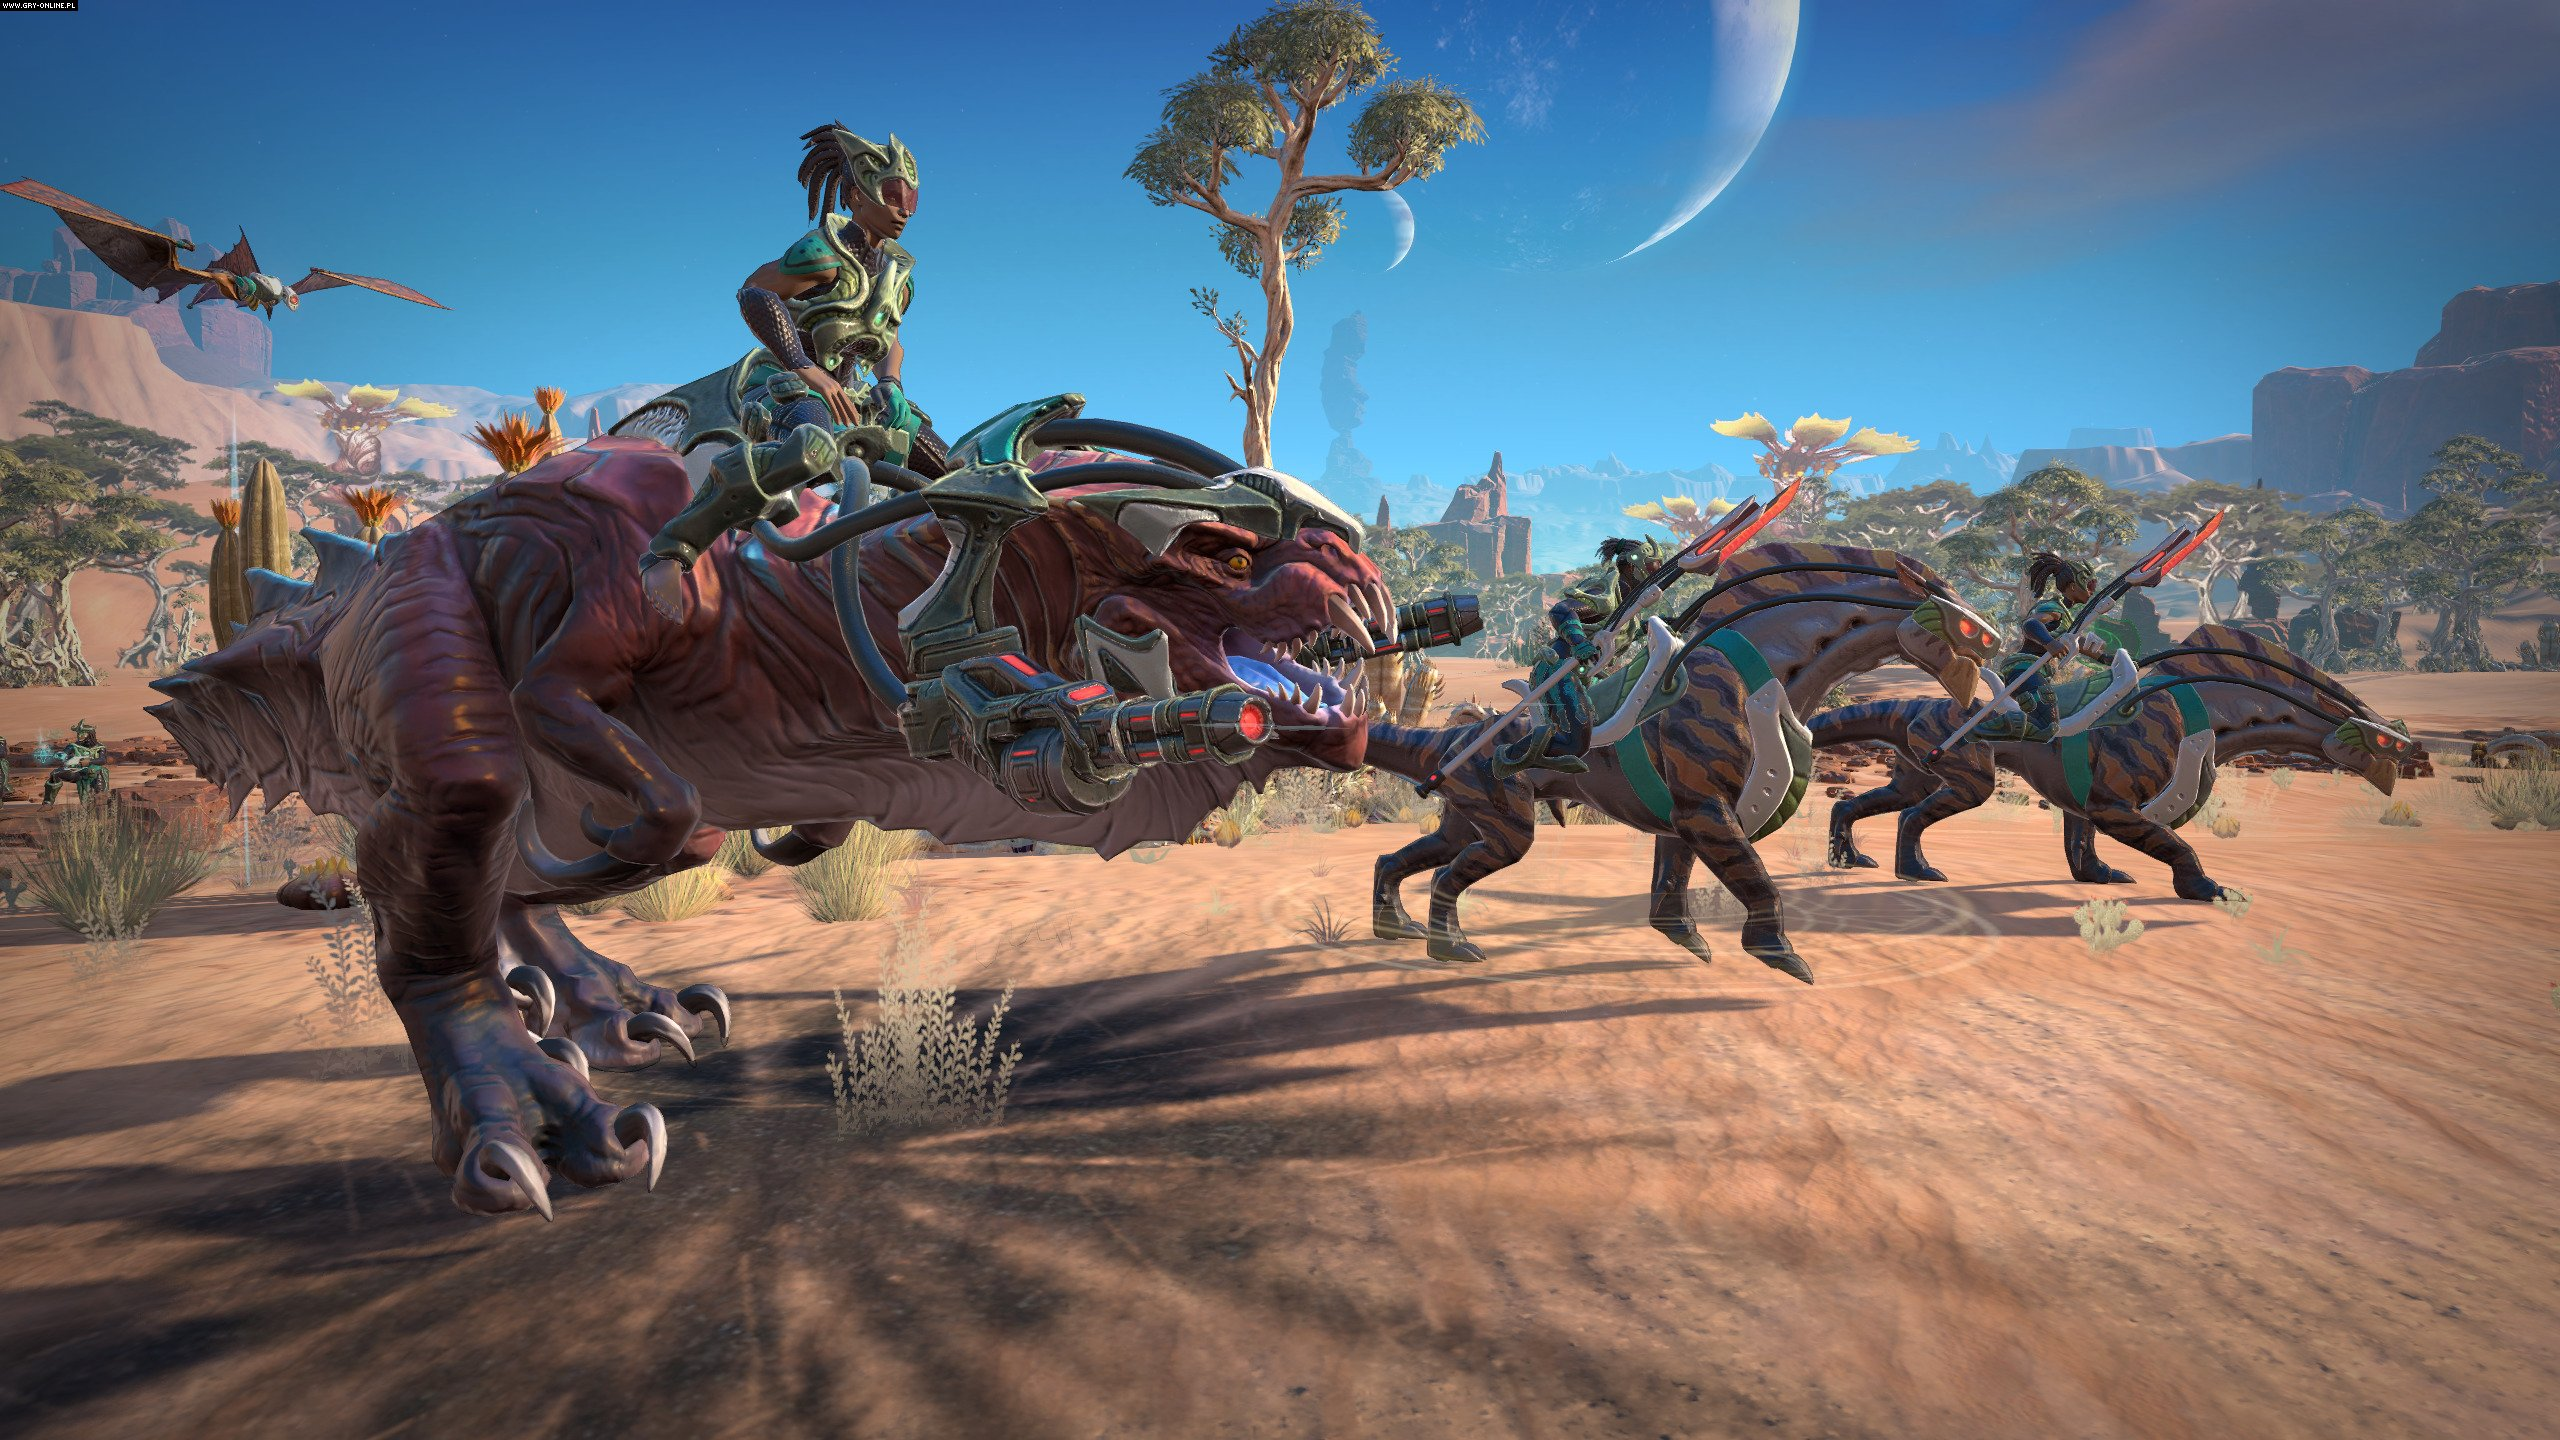 Age of Wonders: Planetfall PC Games Image 1/30, Triumph Studios, Paradox Interactive